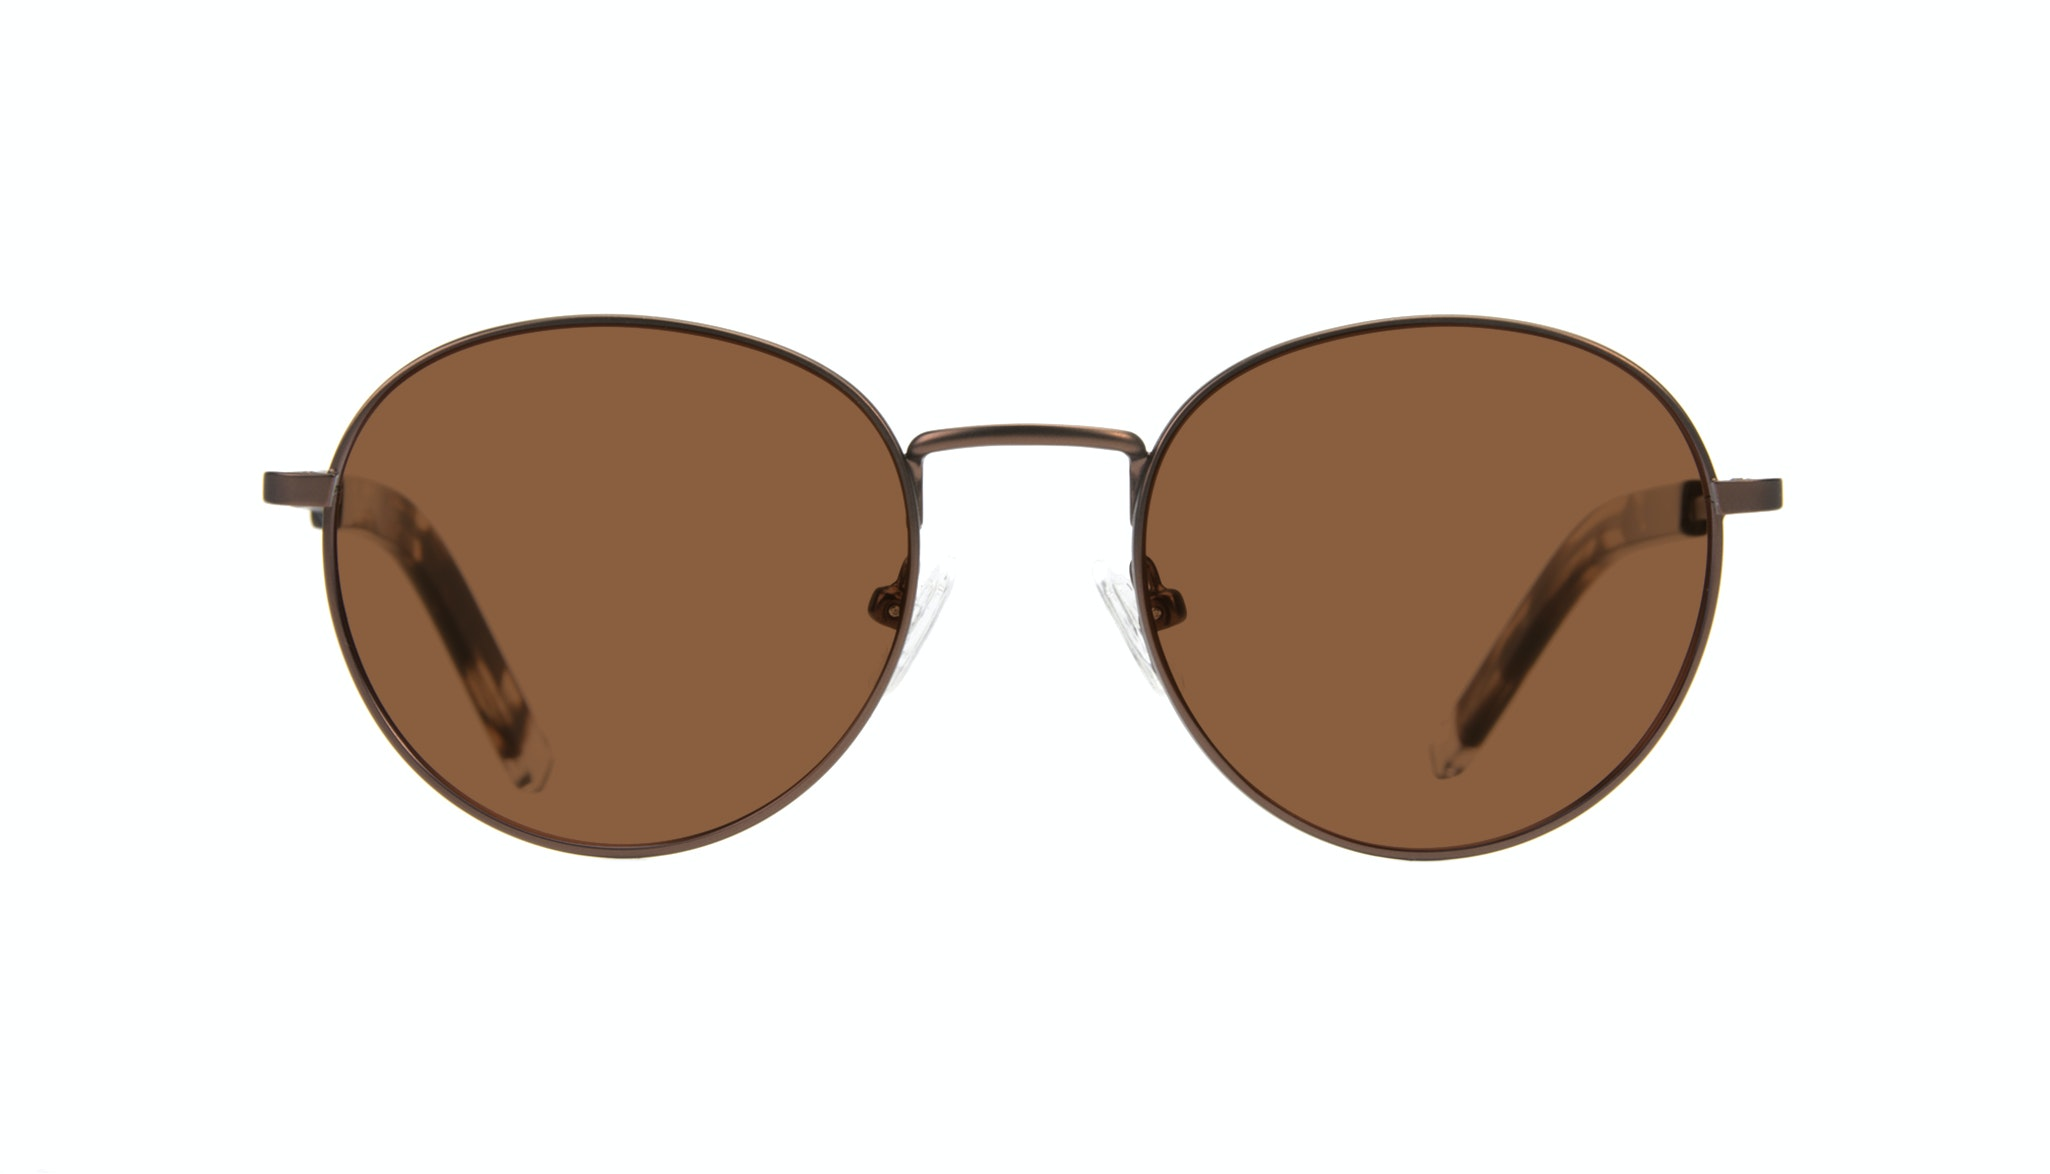 Affordable Fashion Glasses Round Sunglasses Men Lean Mud Front